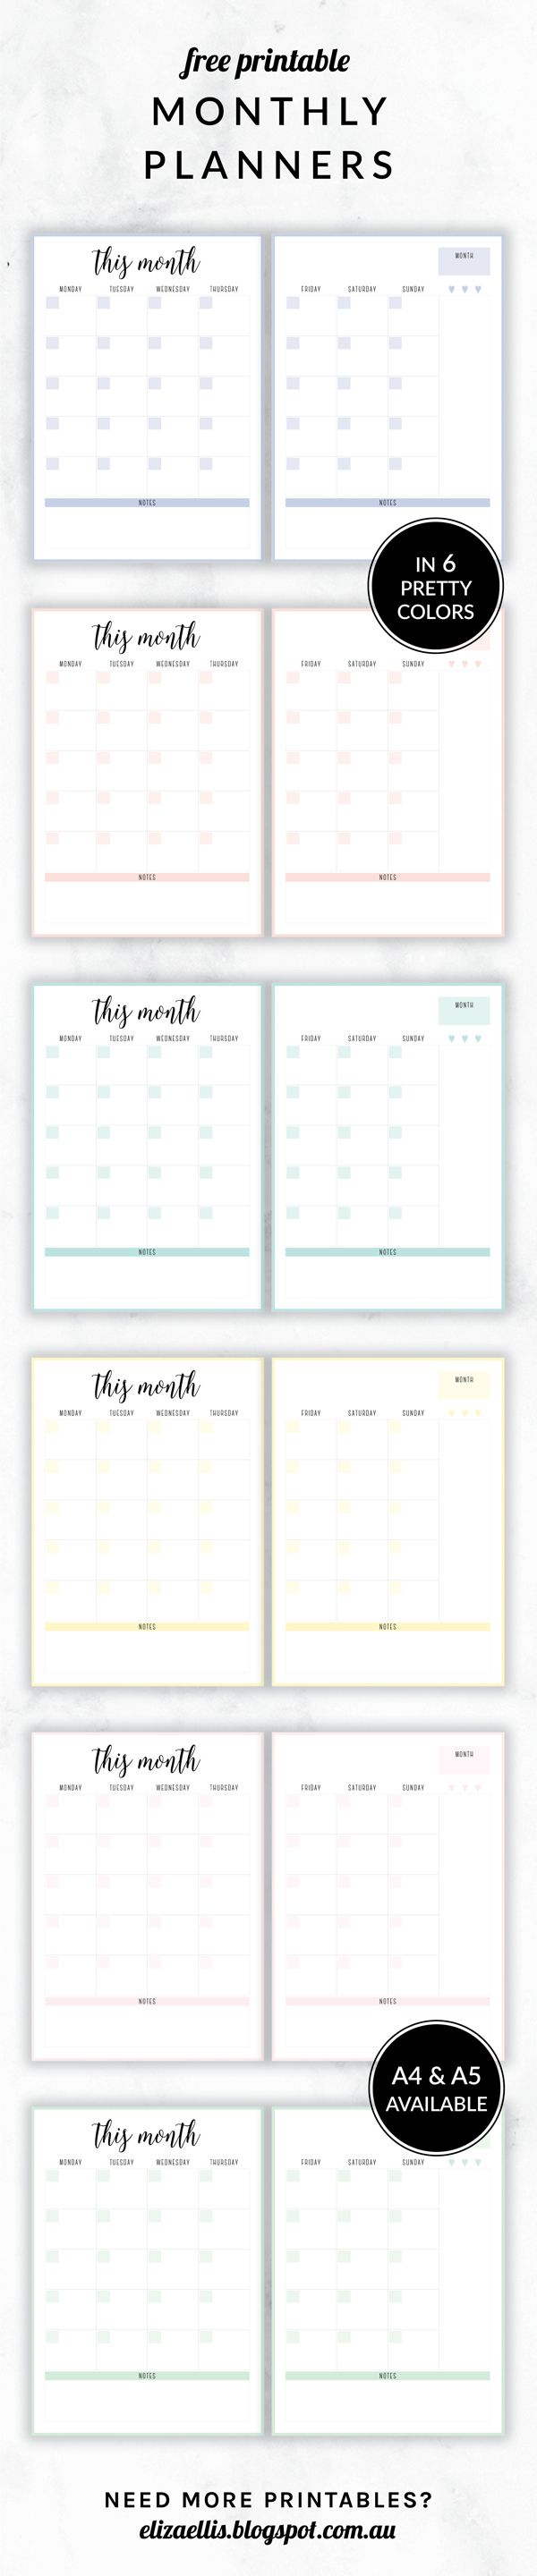 free printable irma monthly planners by eliza ellis available in a4